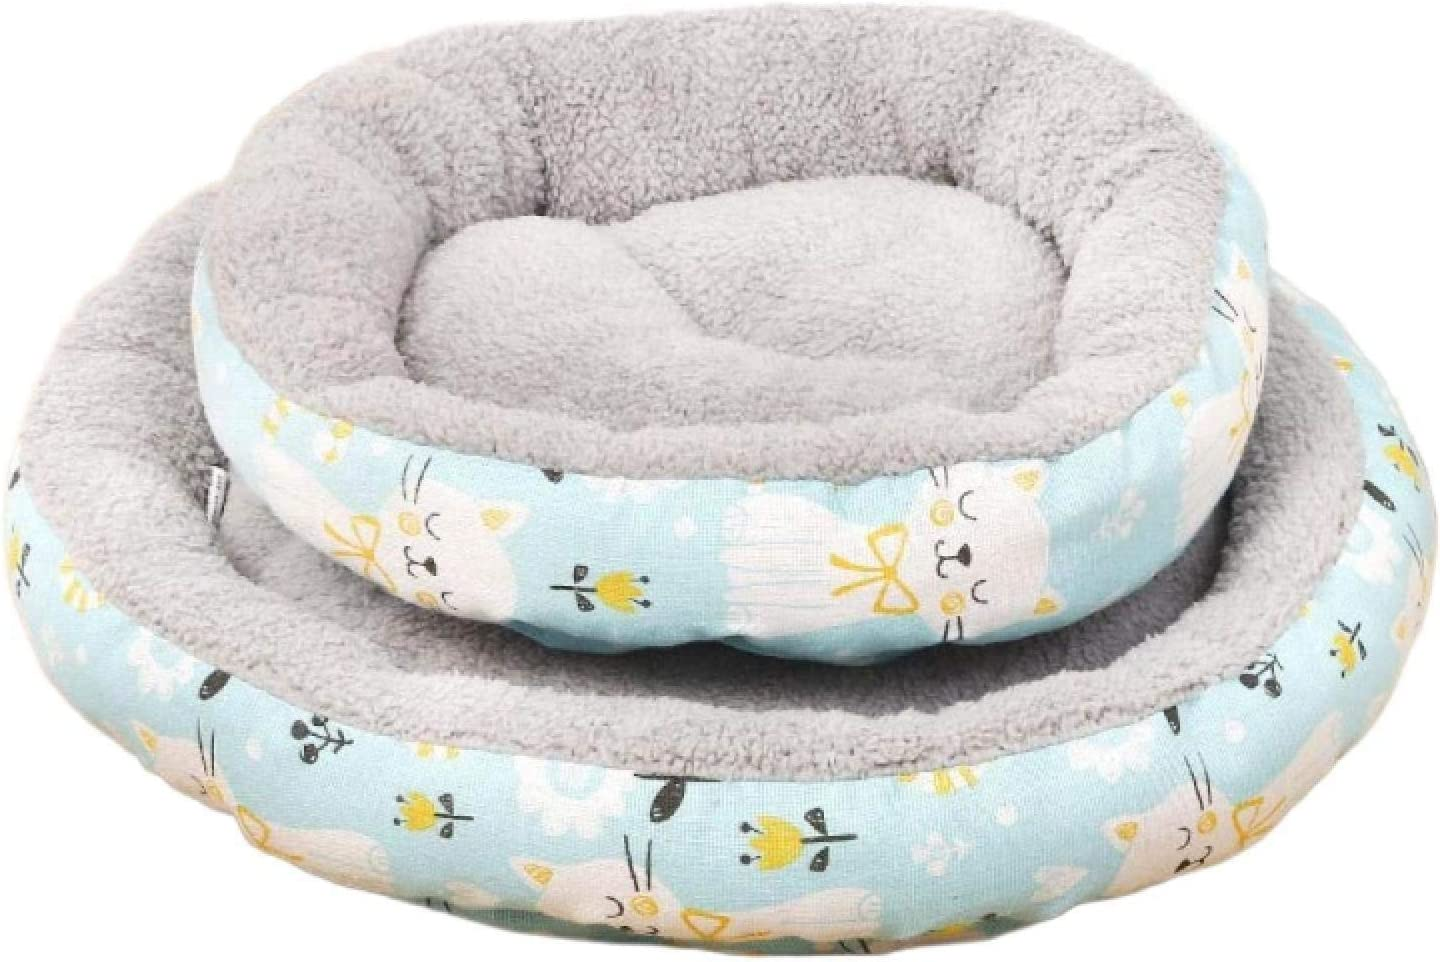 YZXZM Washable Pet Dog Bed Ranking TOP13 Limited time sale Canvas Small Ultra-Soft Beds Plu